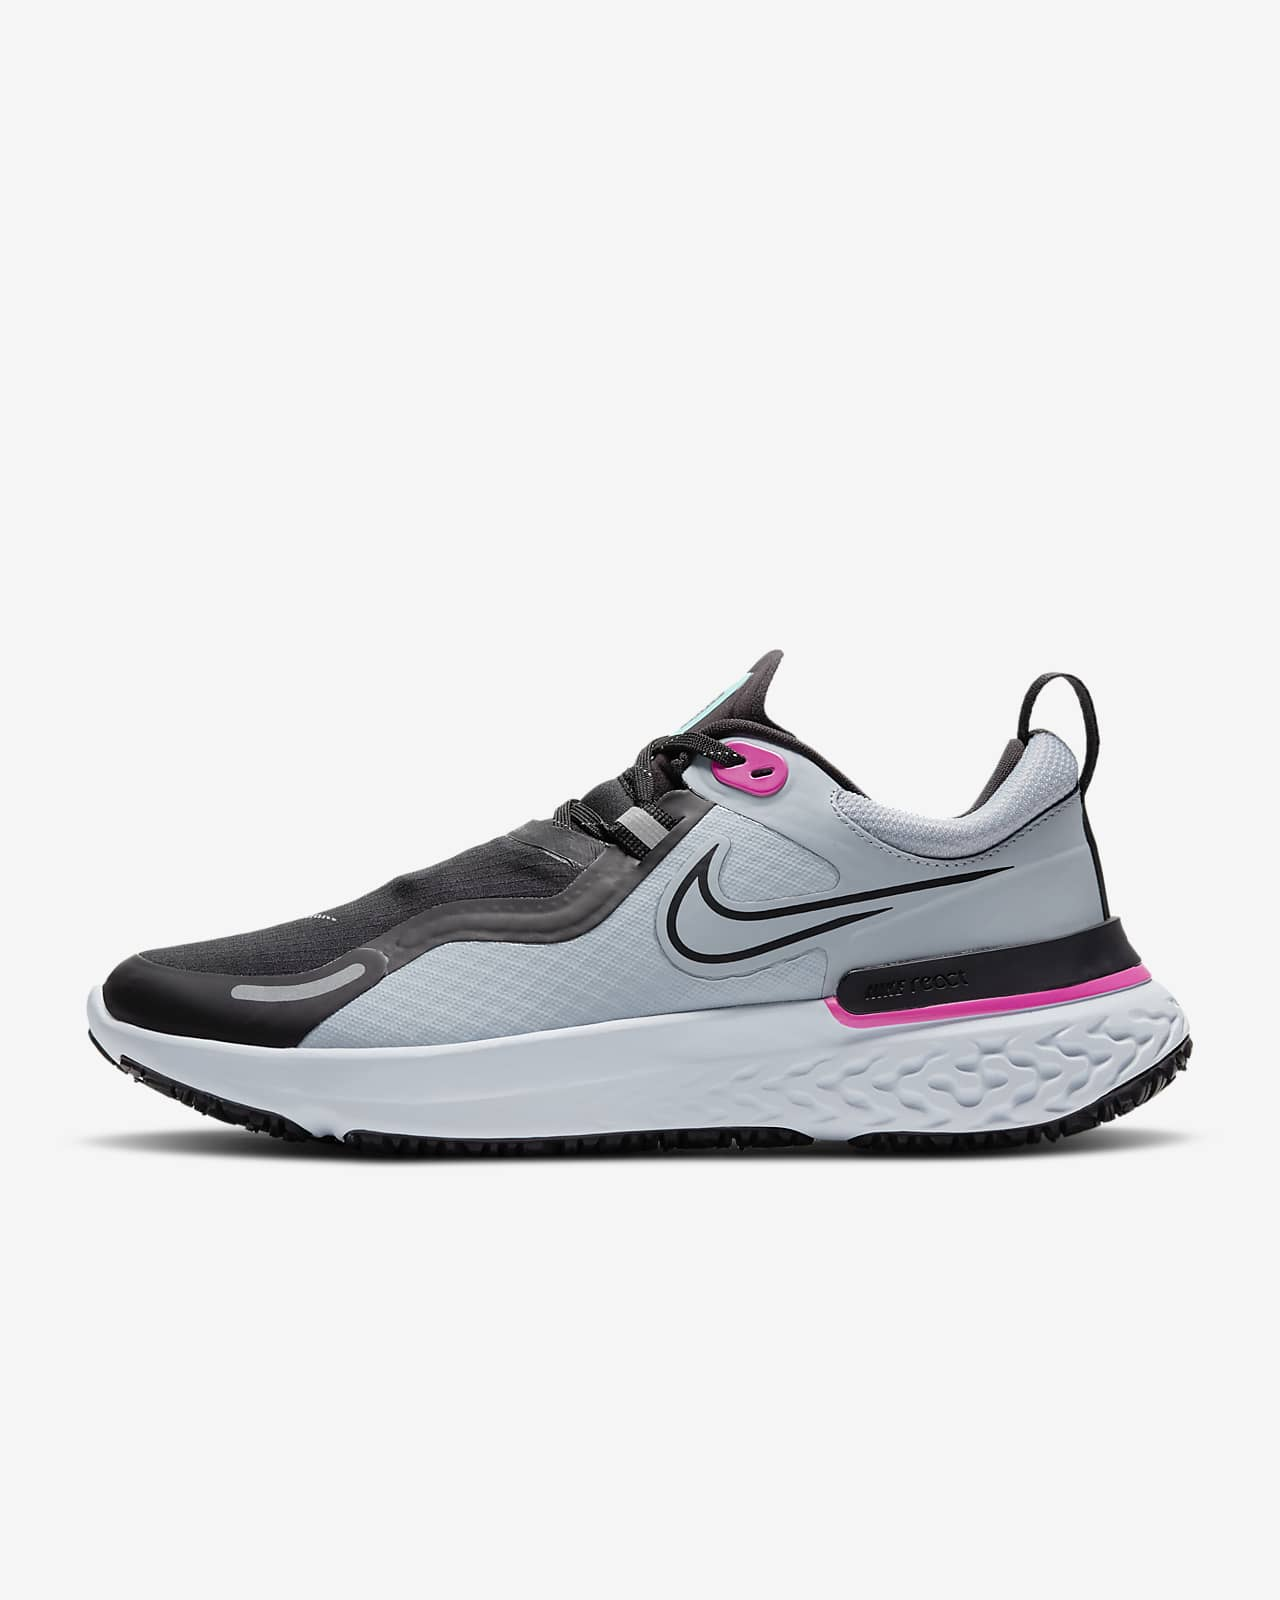 Damskie buty do biegania Nike React Miler Shield